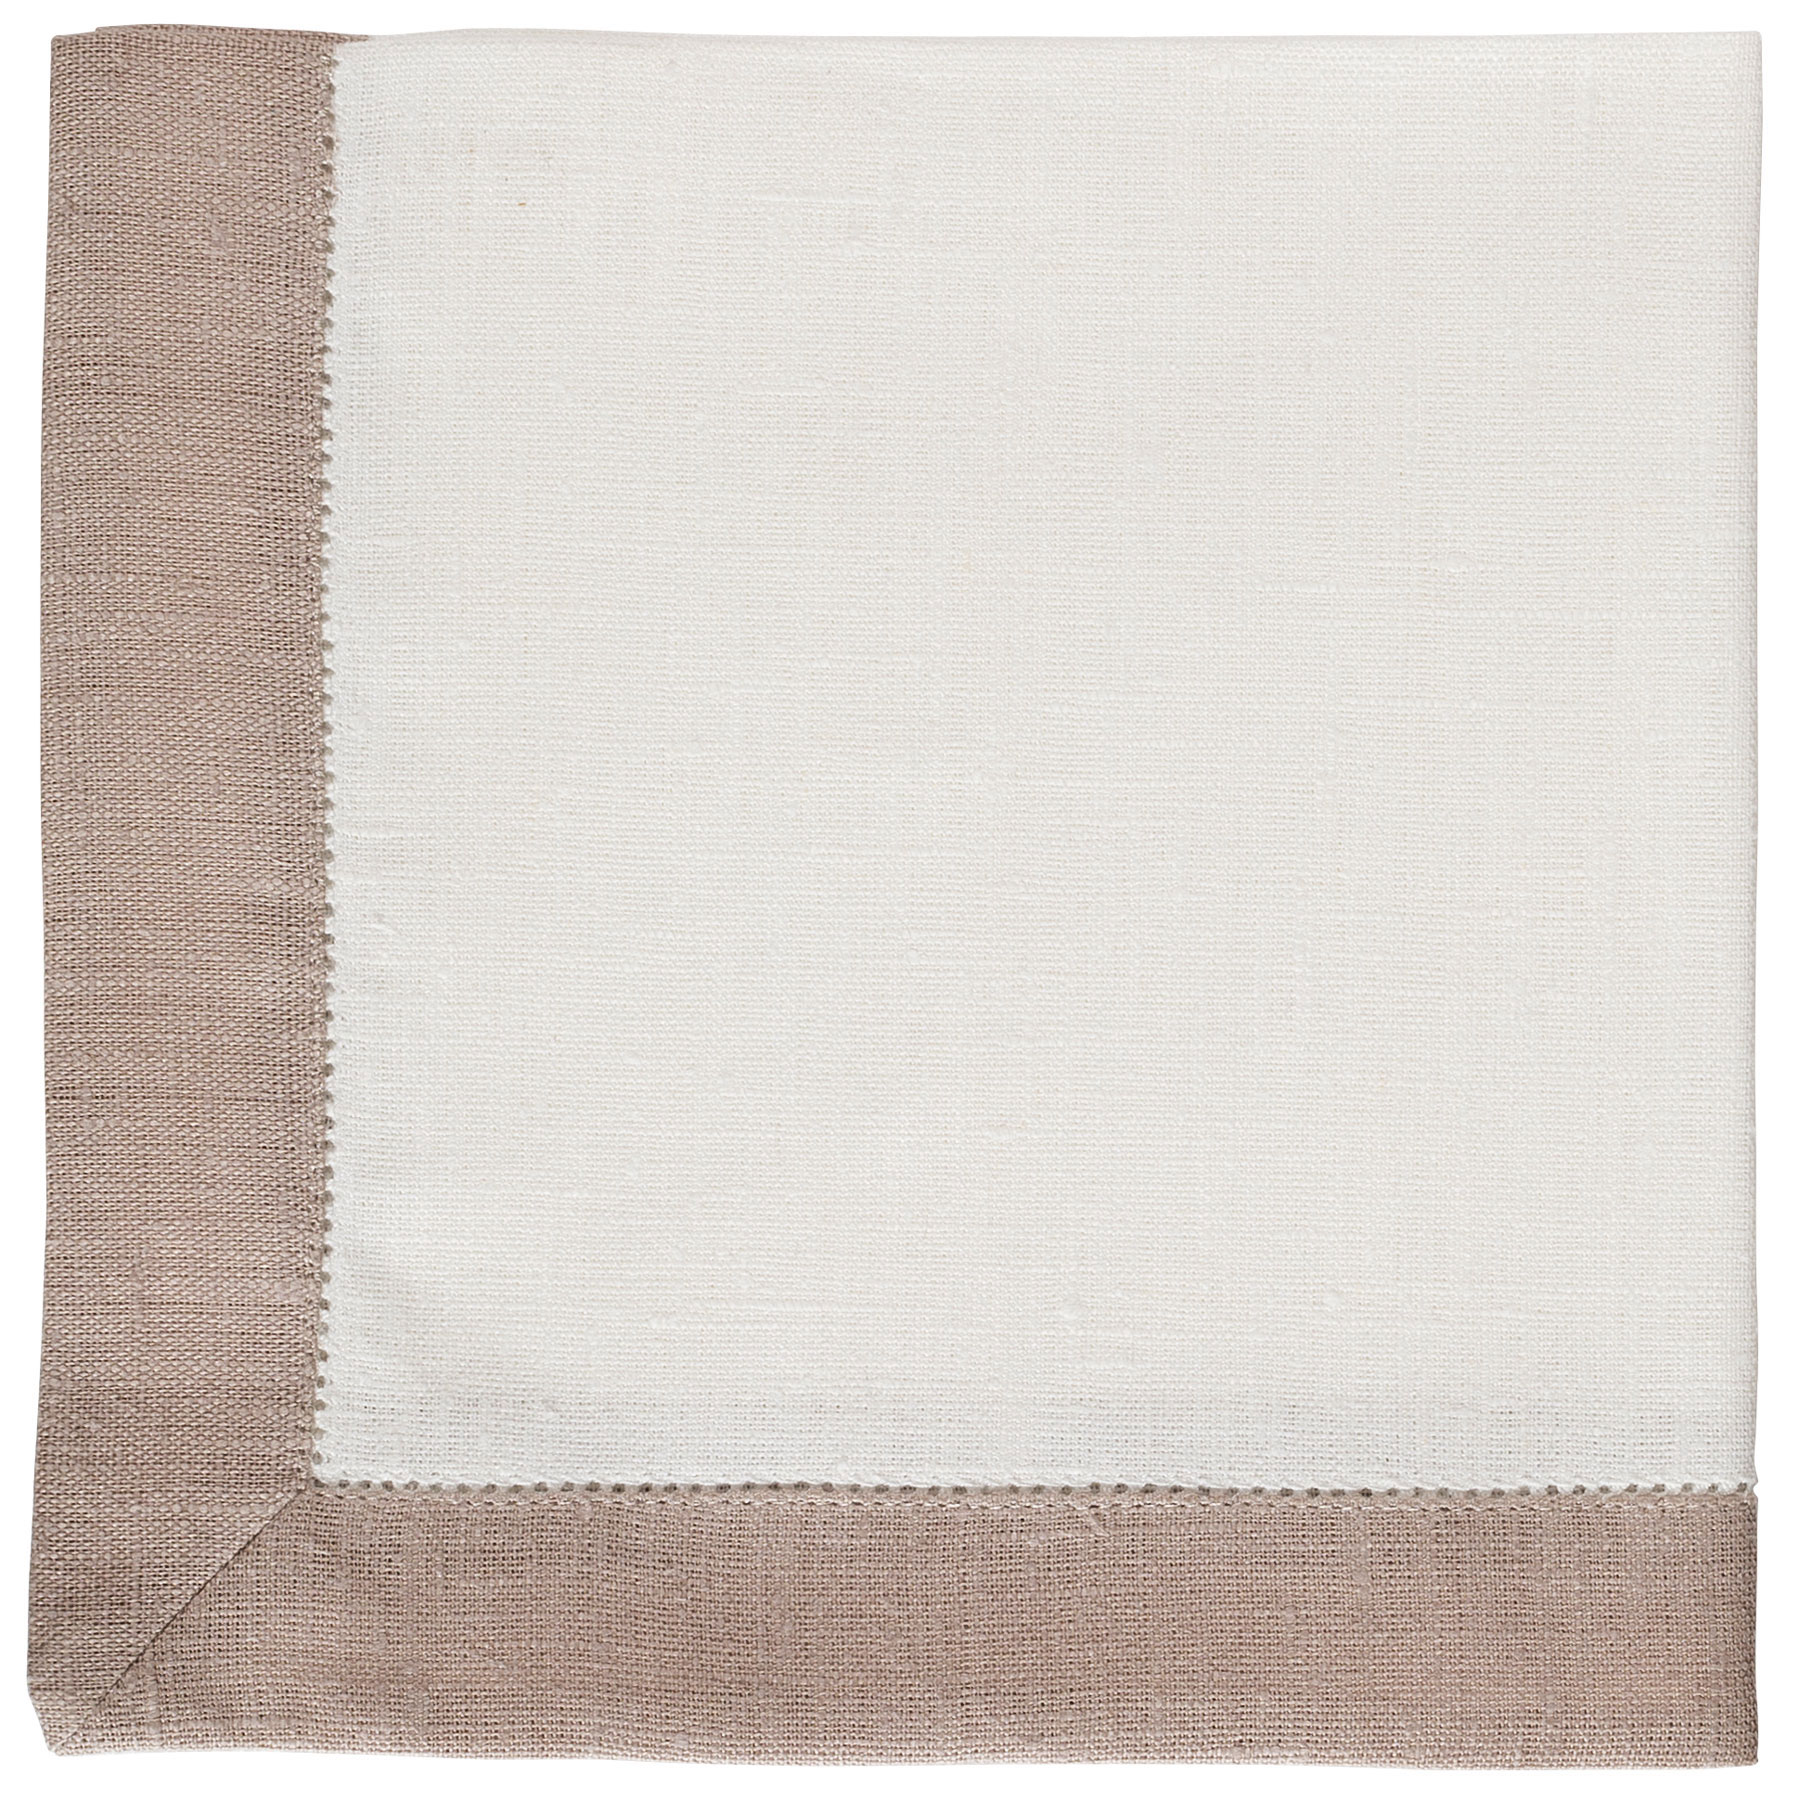 NAPKIN WITH BORDER <br />natural white / sand